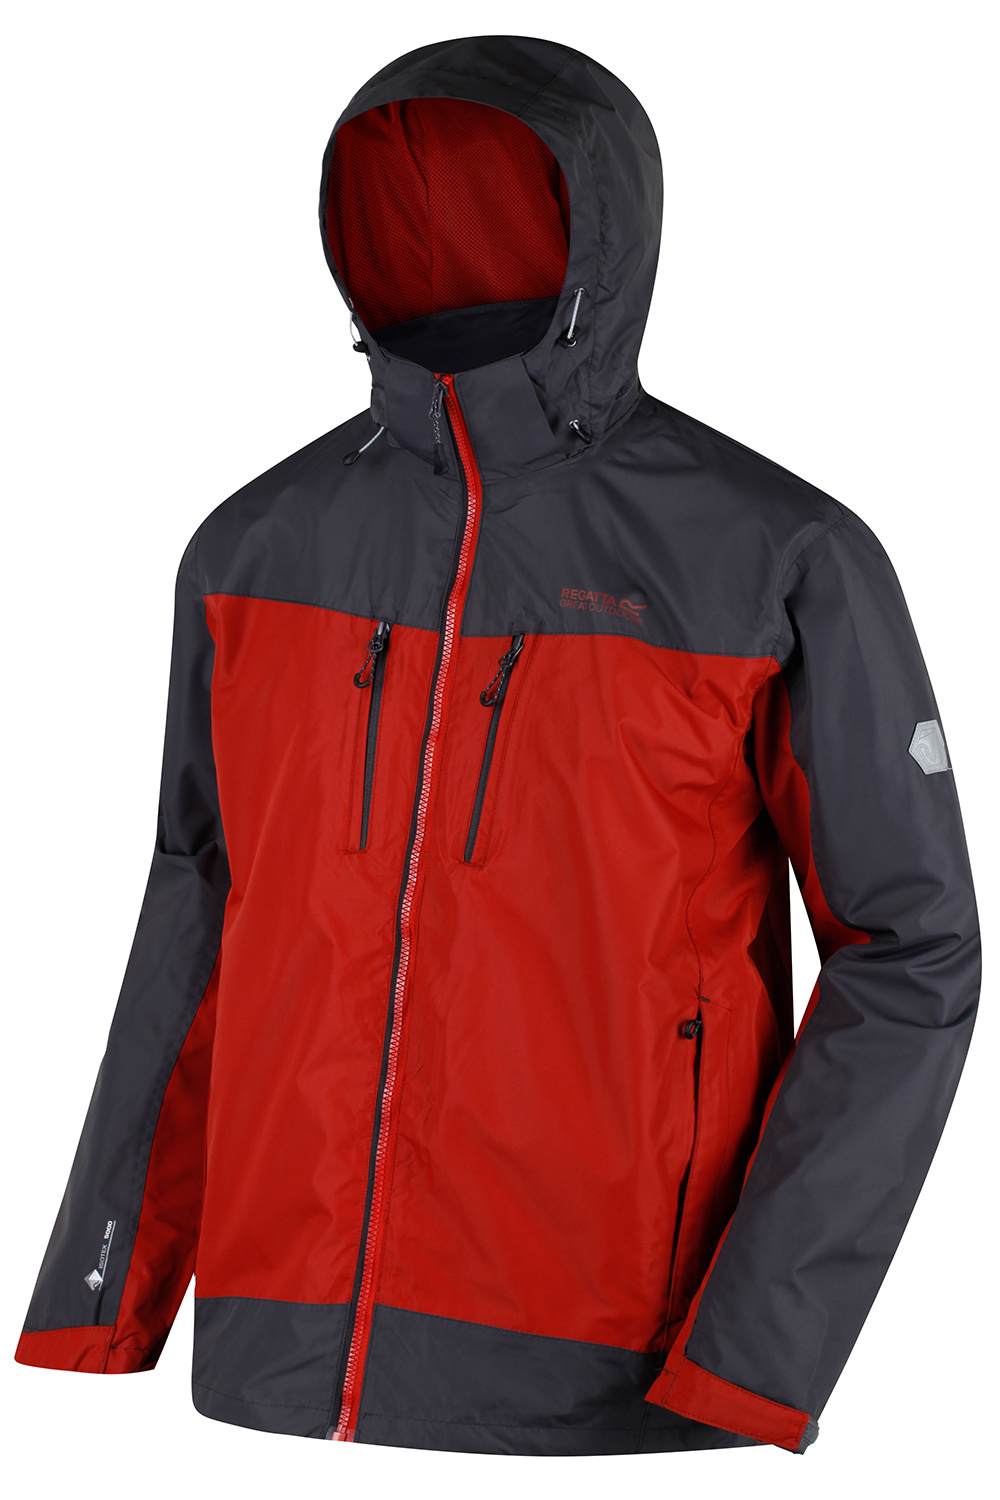 Regatta-Mens-Calderdale-II-Jacket-Waterproof-Breathable-Isotex-5000-Hooded-Coat thumbnail 17